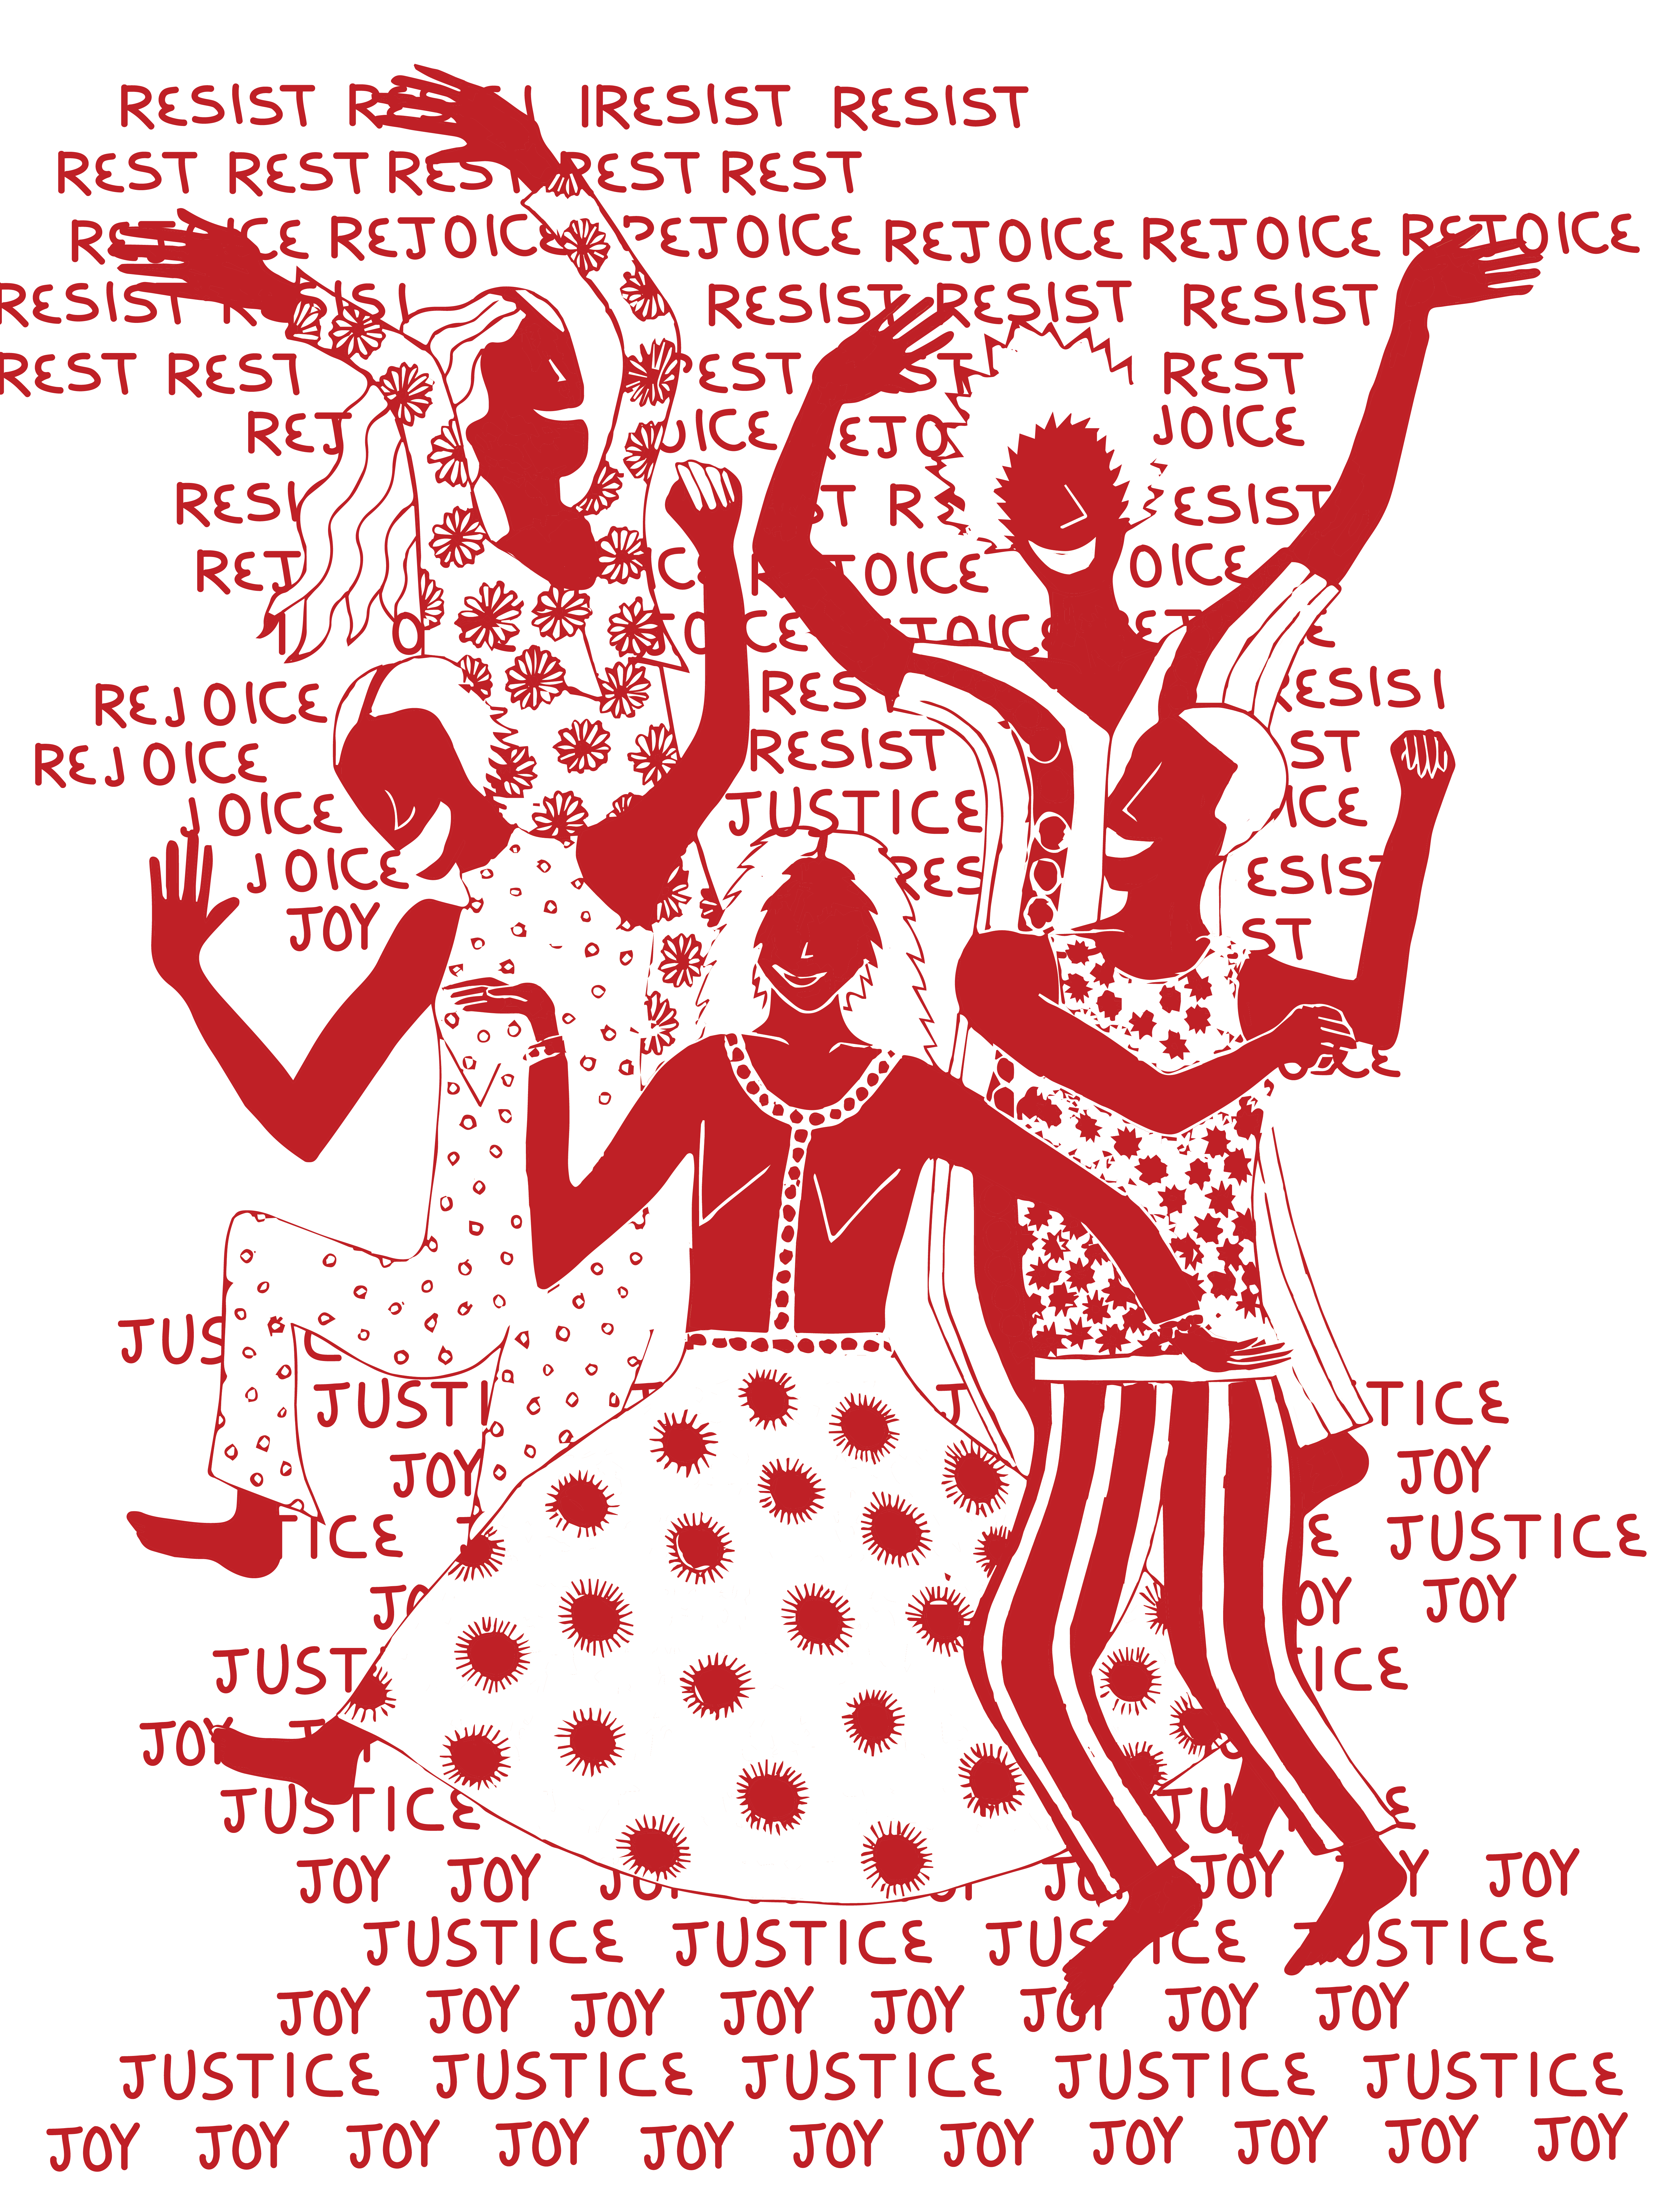 image description: five figures dance with smiles on their faces and patterned clothing. They are dancing in front of repeating text that reads resist, rest, rejoice, justice, joy.